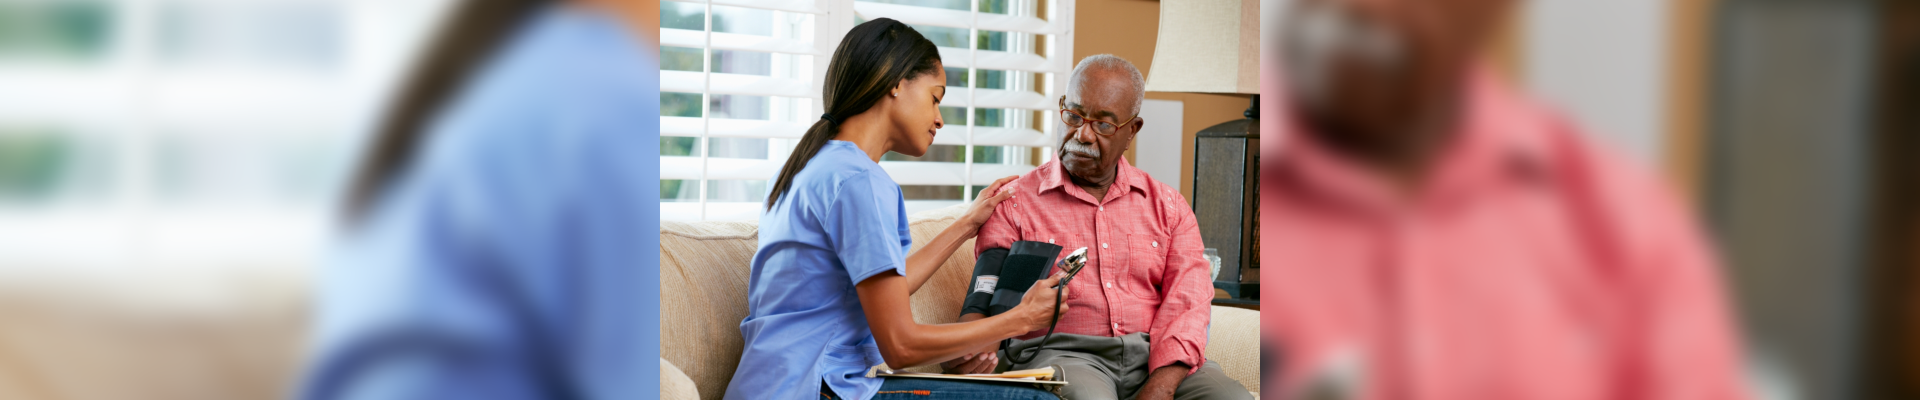 nurse checking blood pressure of the patient